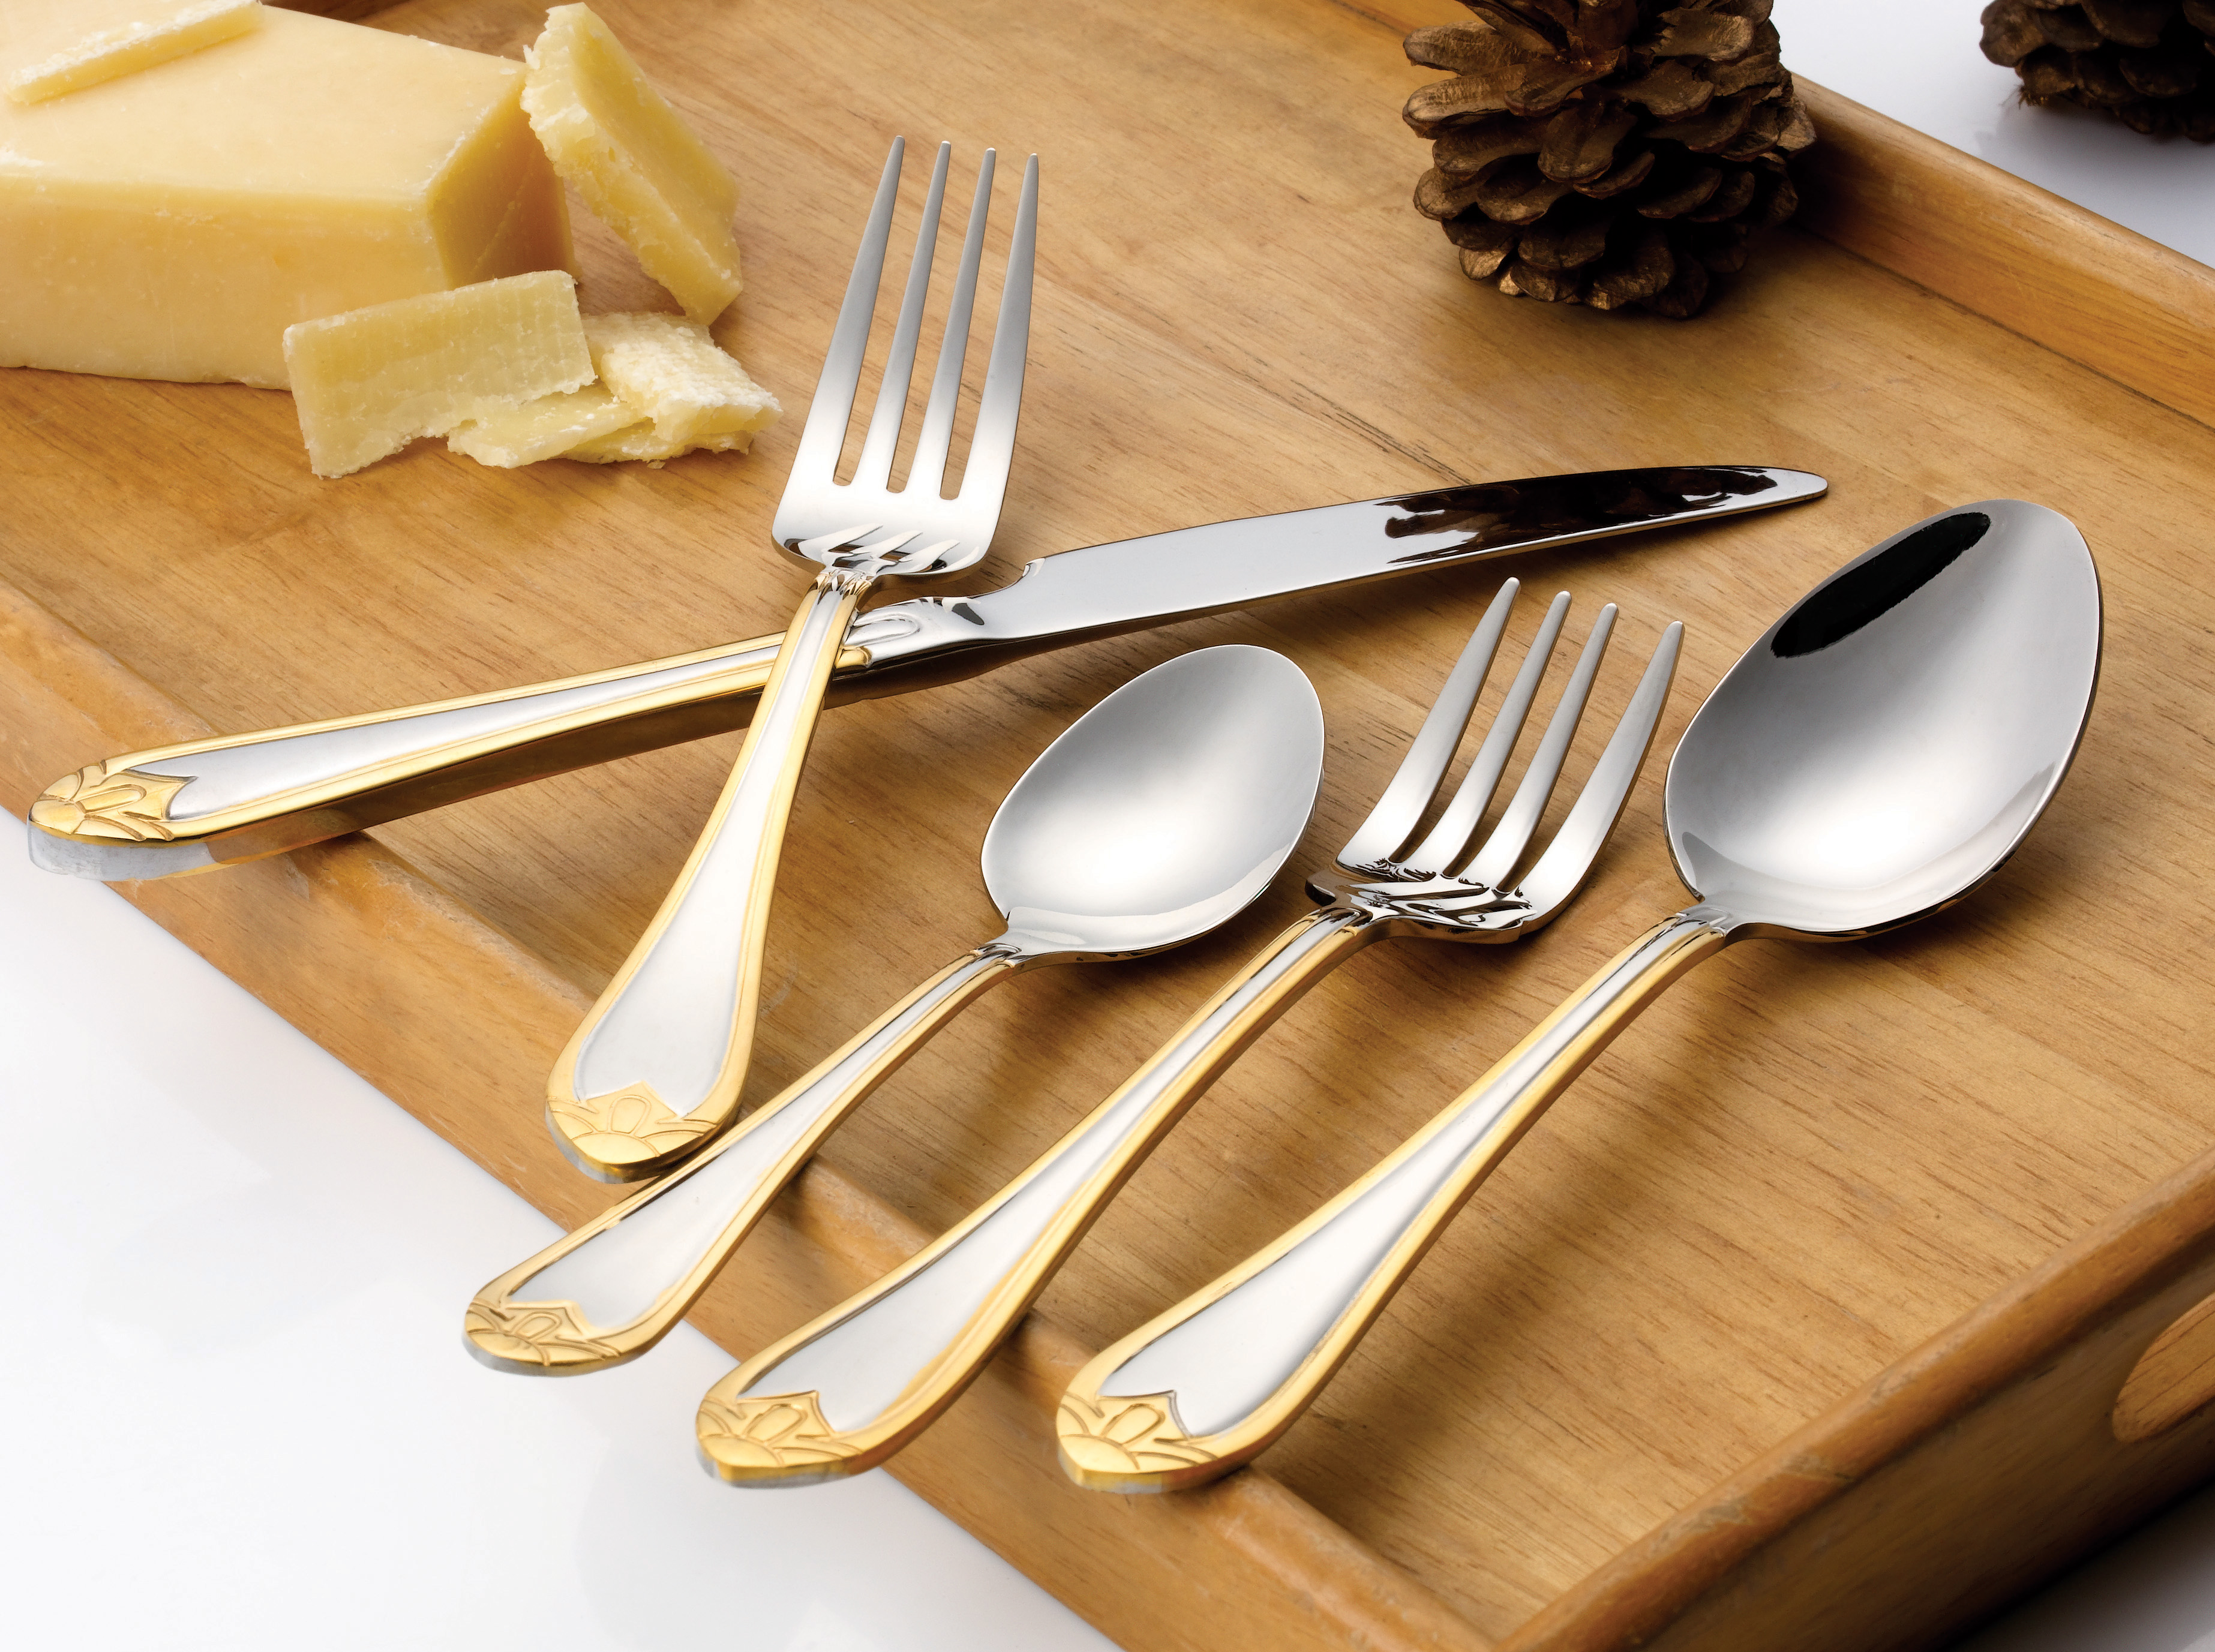 20 Piece 18 10 Flatware Set Service For Mirror And Gold